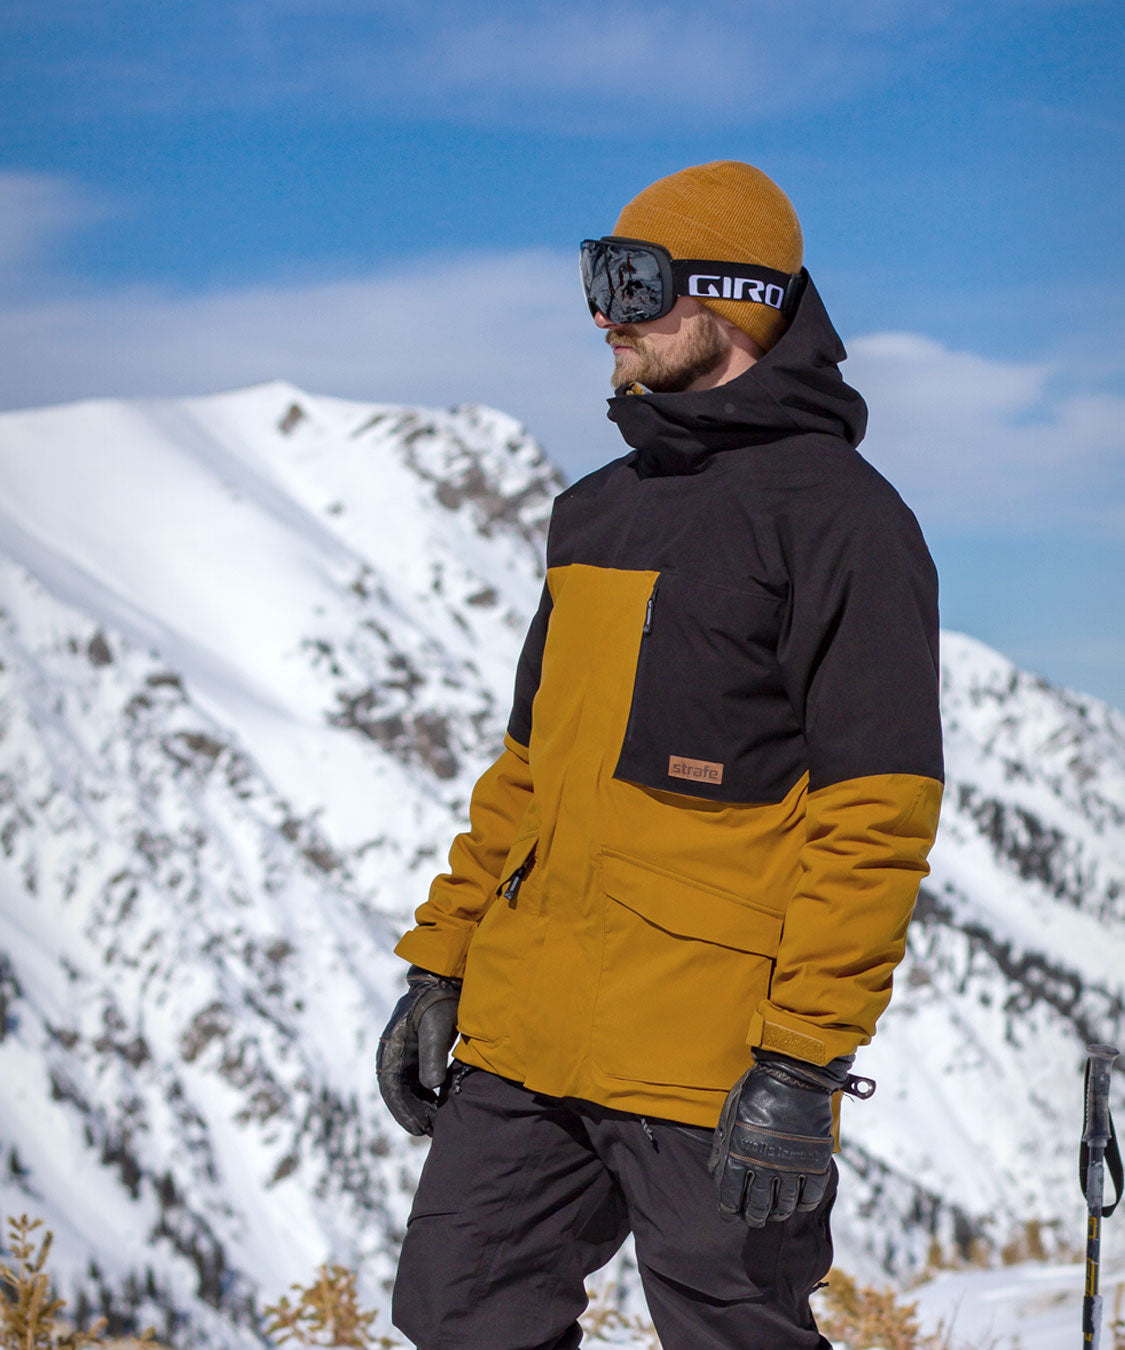 posing in the Hayden ski jacket in front of snowy mountains